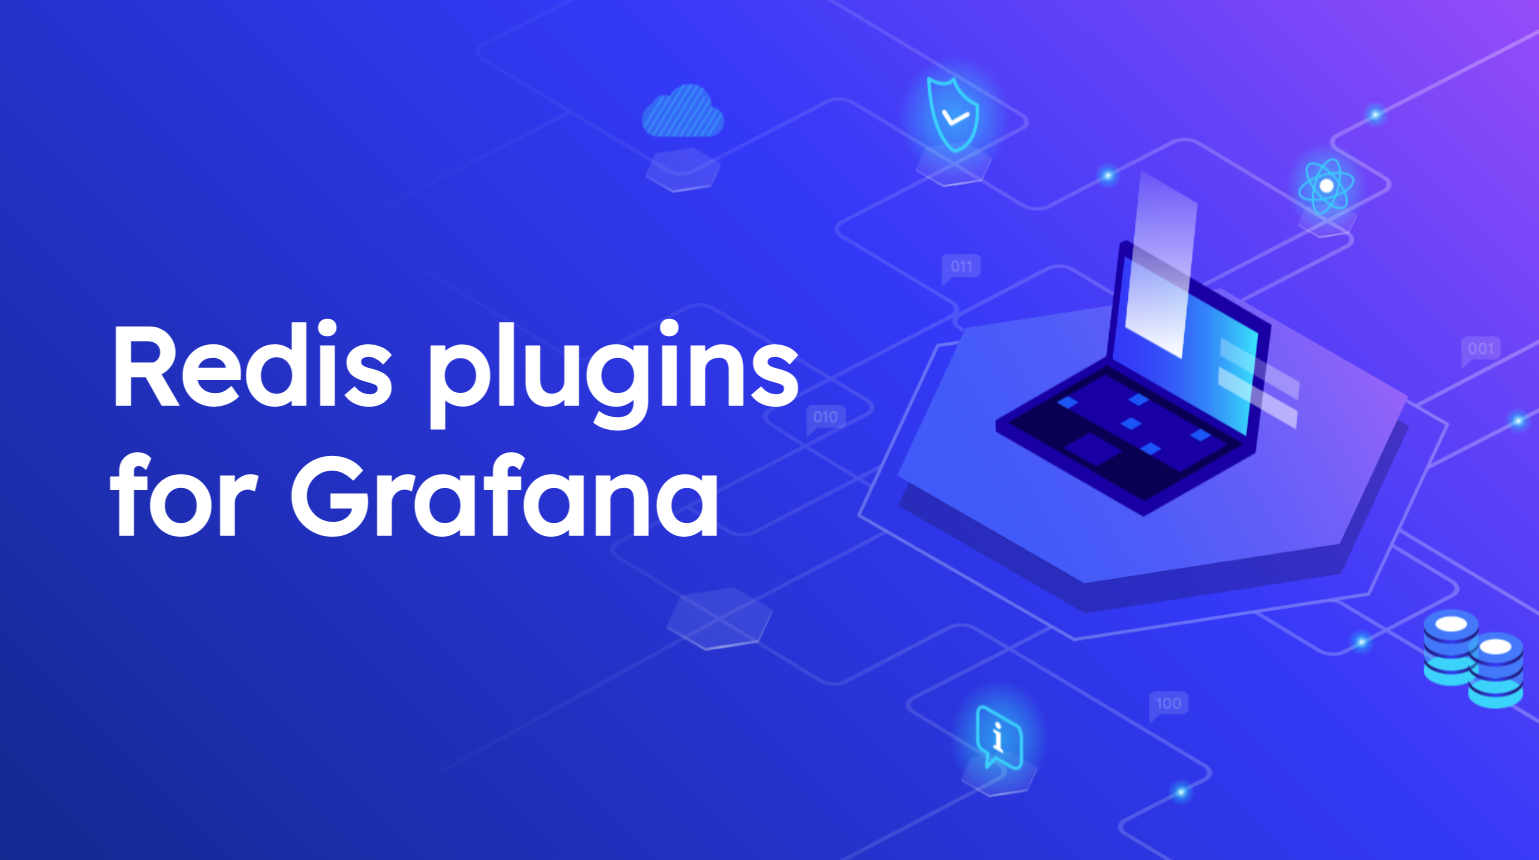 Plugins Connect Grafana to Redis in New Ways